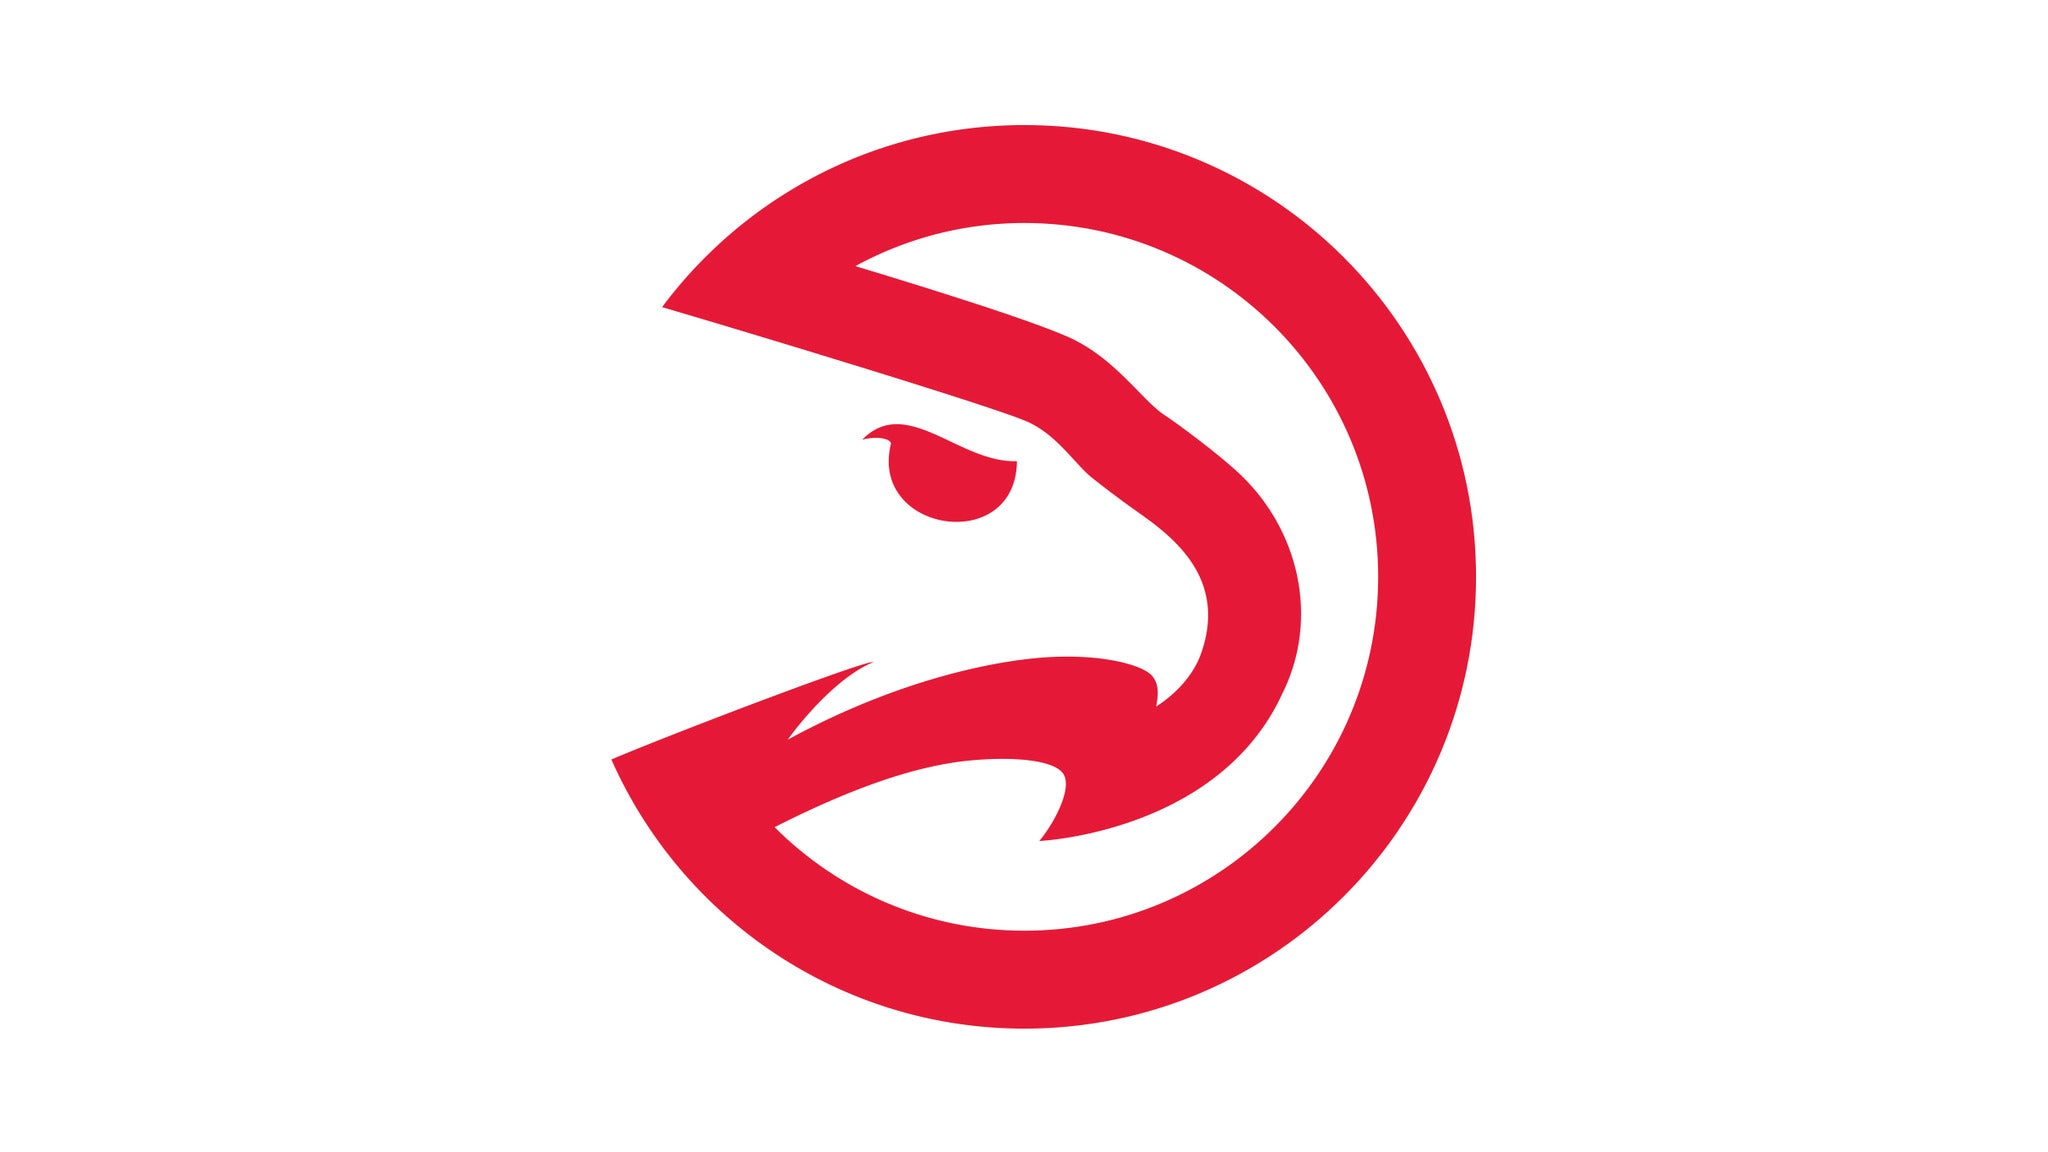 Atlanta Hawks v Philadelphia 76Ers at Philips Arena - Atlanta, GA 30303